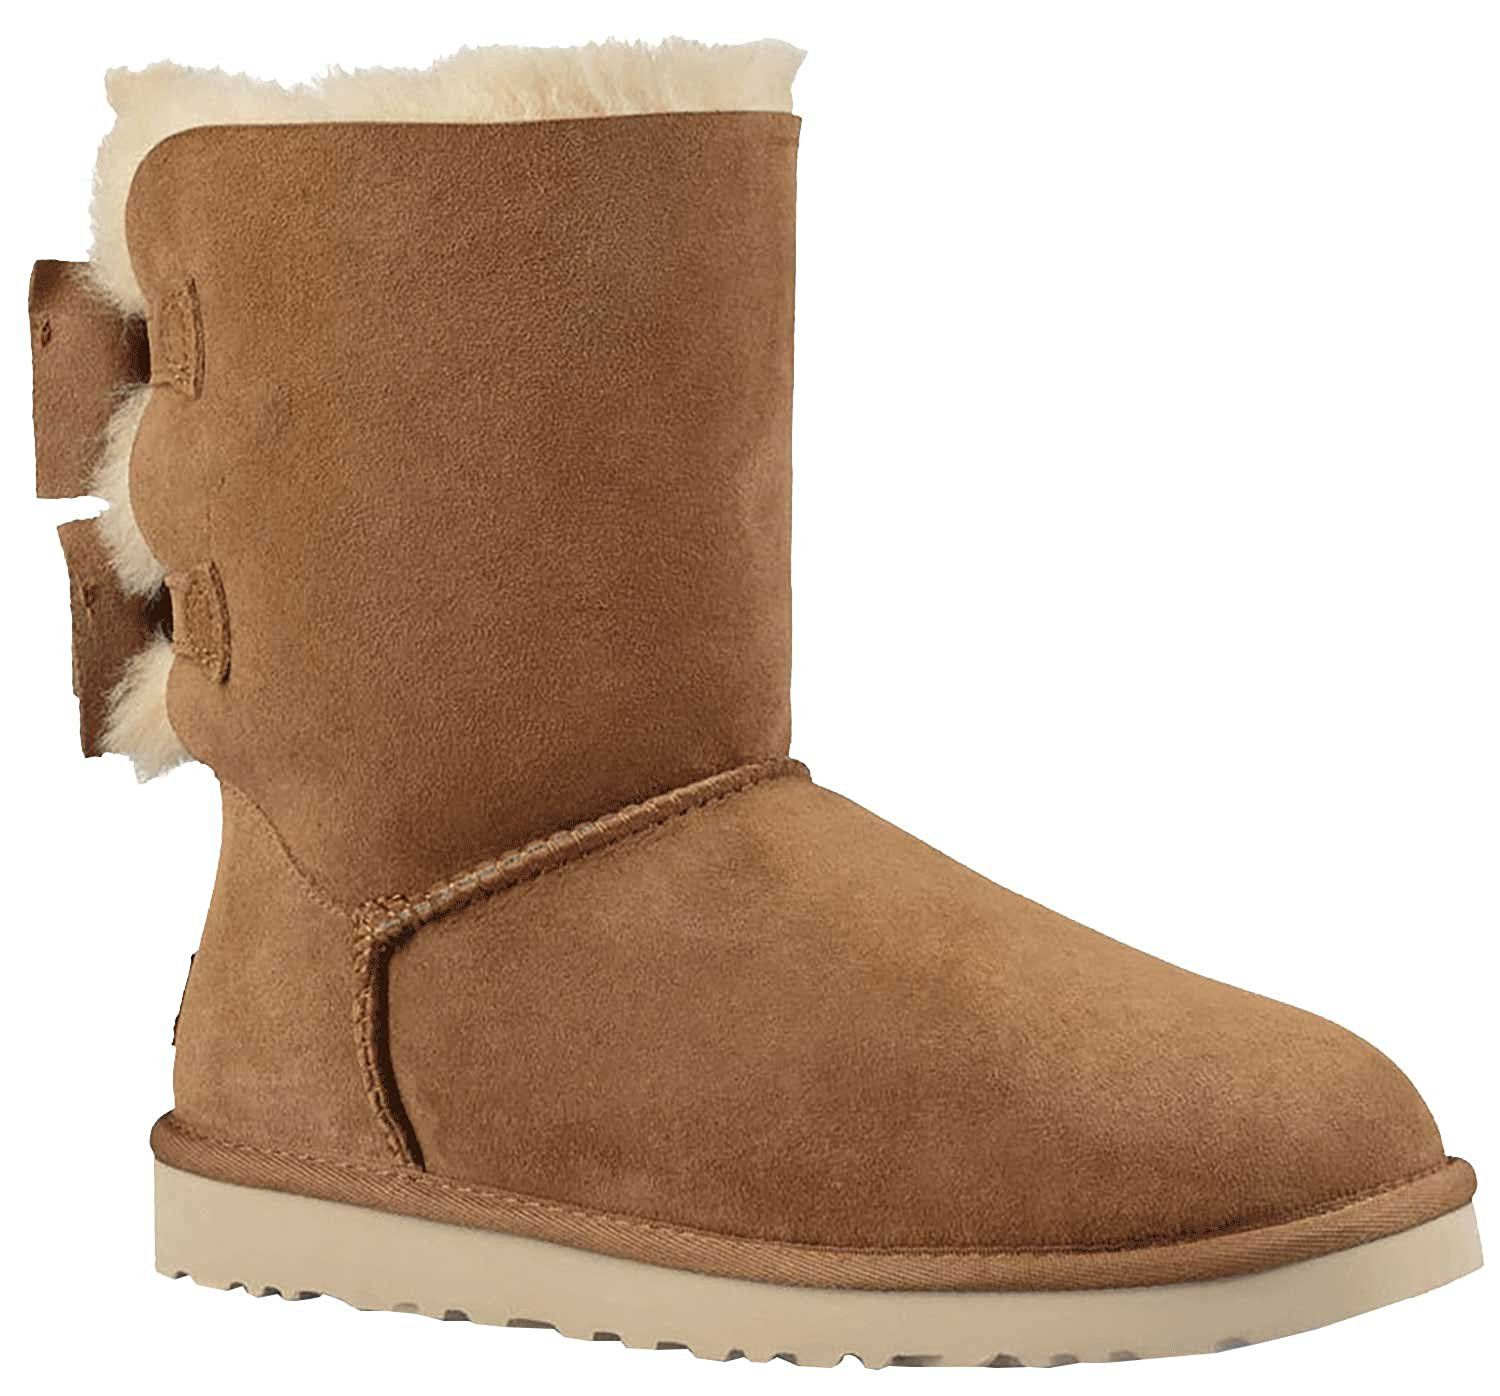 The Best Gift Discount's for 2016: HE UGGS ME HE UGGS ME NOT !